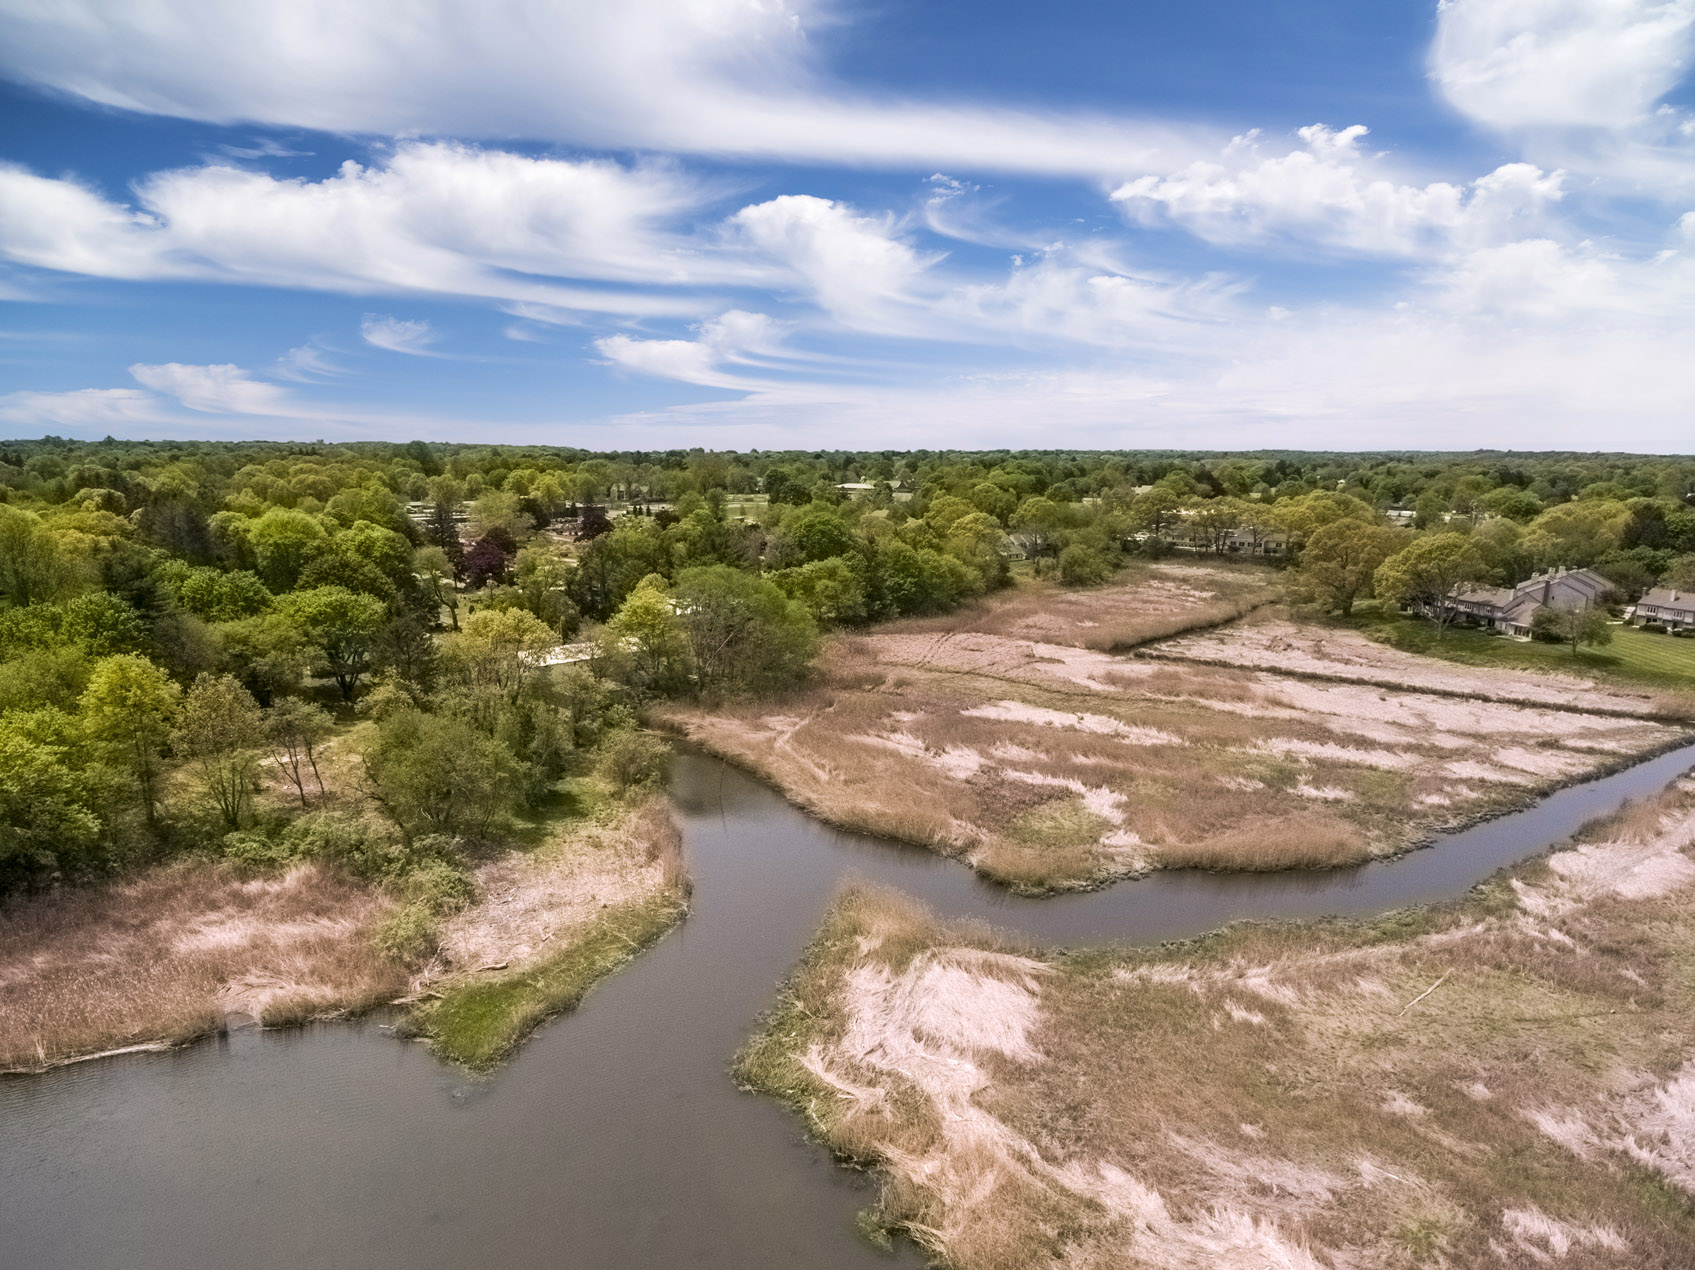 Terreno por un Venta en Ten Acres Of Direct Waterfront Property On North Cove 91 Sheffield Street Old Saybrook, Connecticut, 06475 Estados Unidos